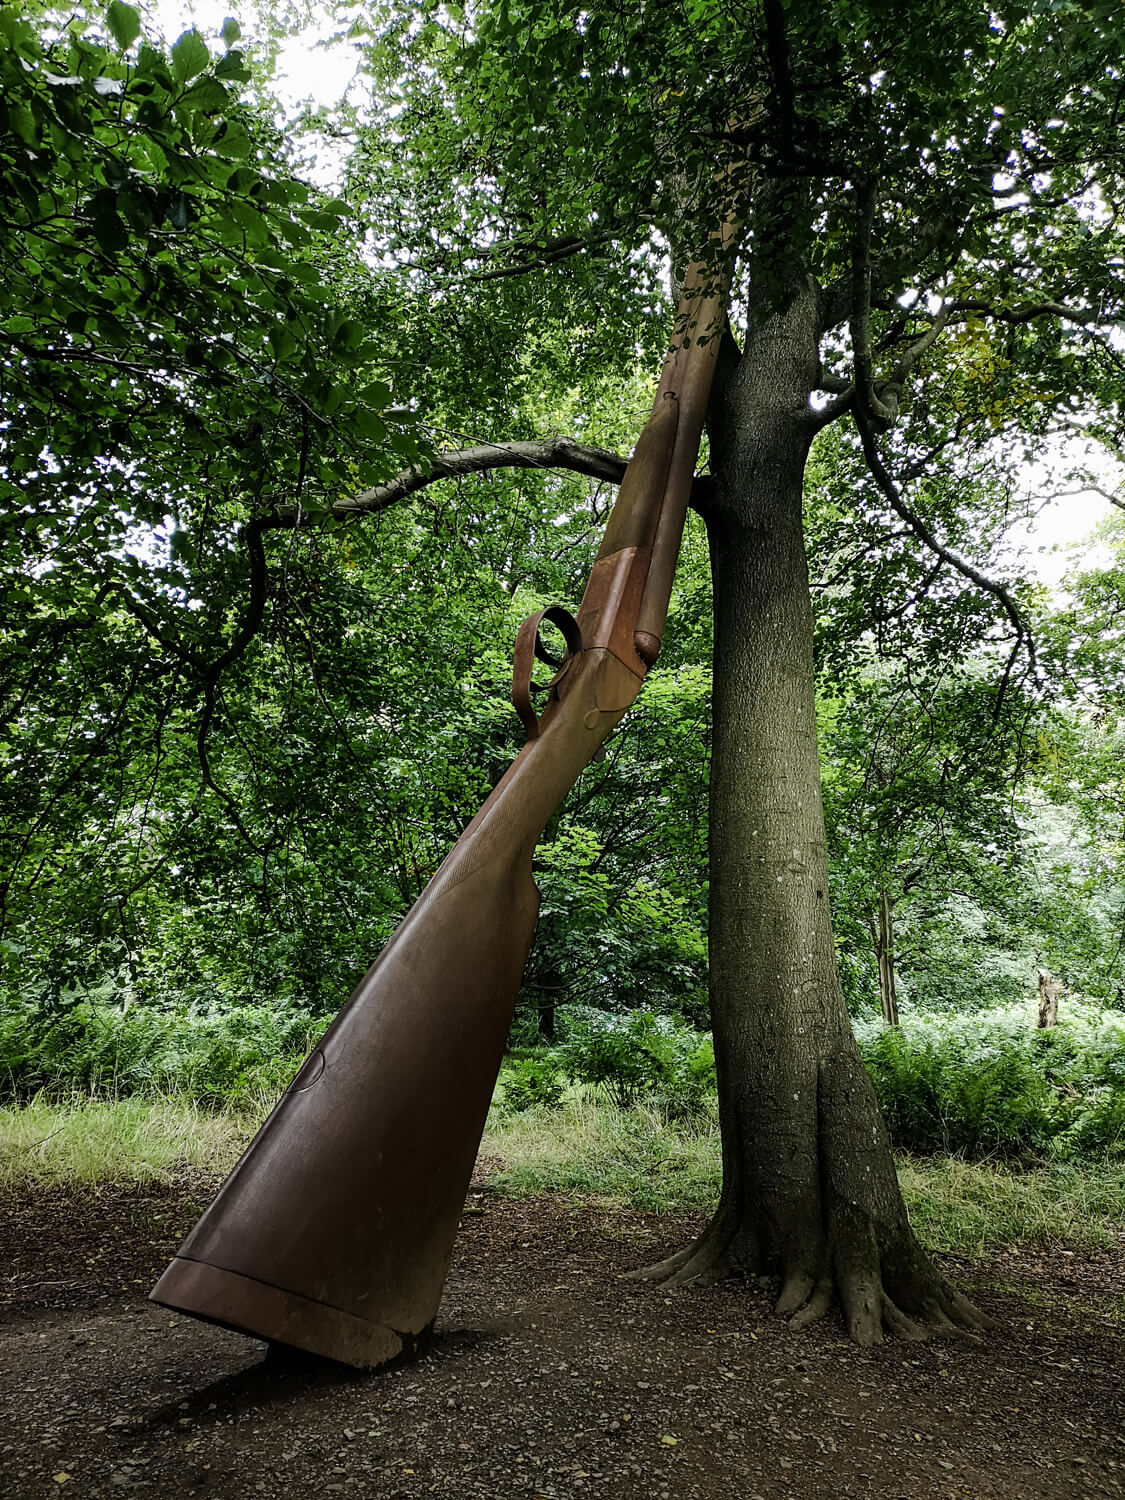 'Landscape with Gun and Tree, 2012' by Cornelia Parker is a giant sculpture of a gun leaning against a tree in Jupiter Artland Edinburgh.